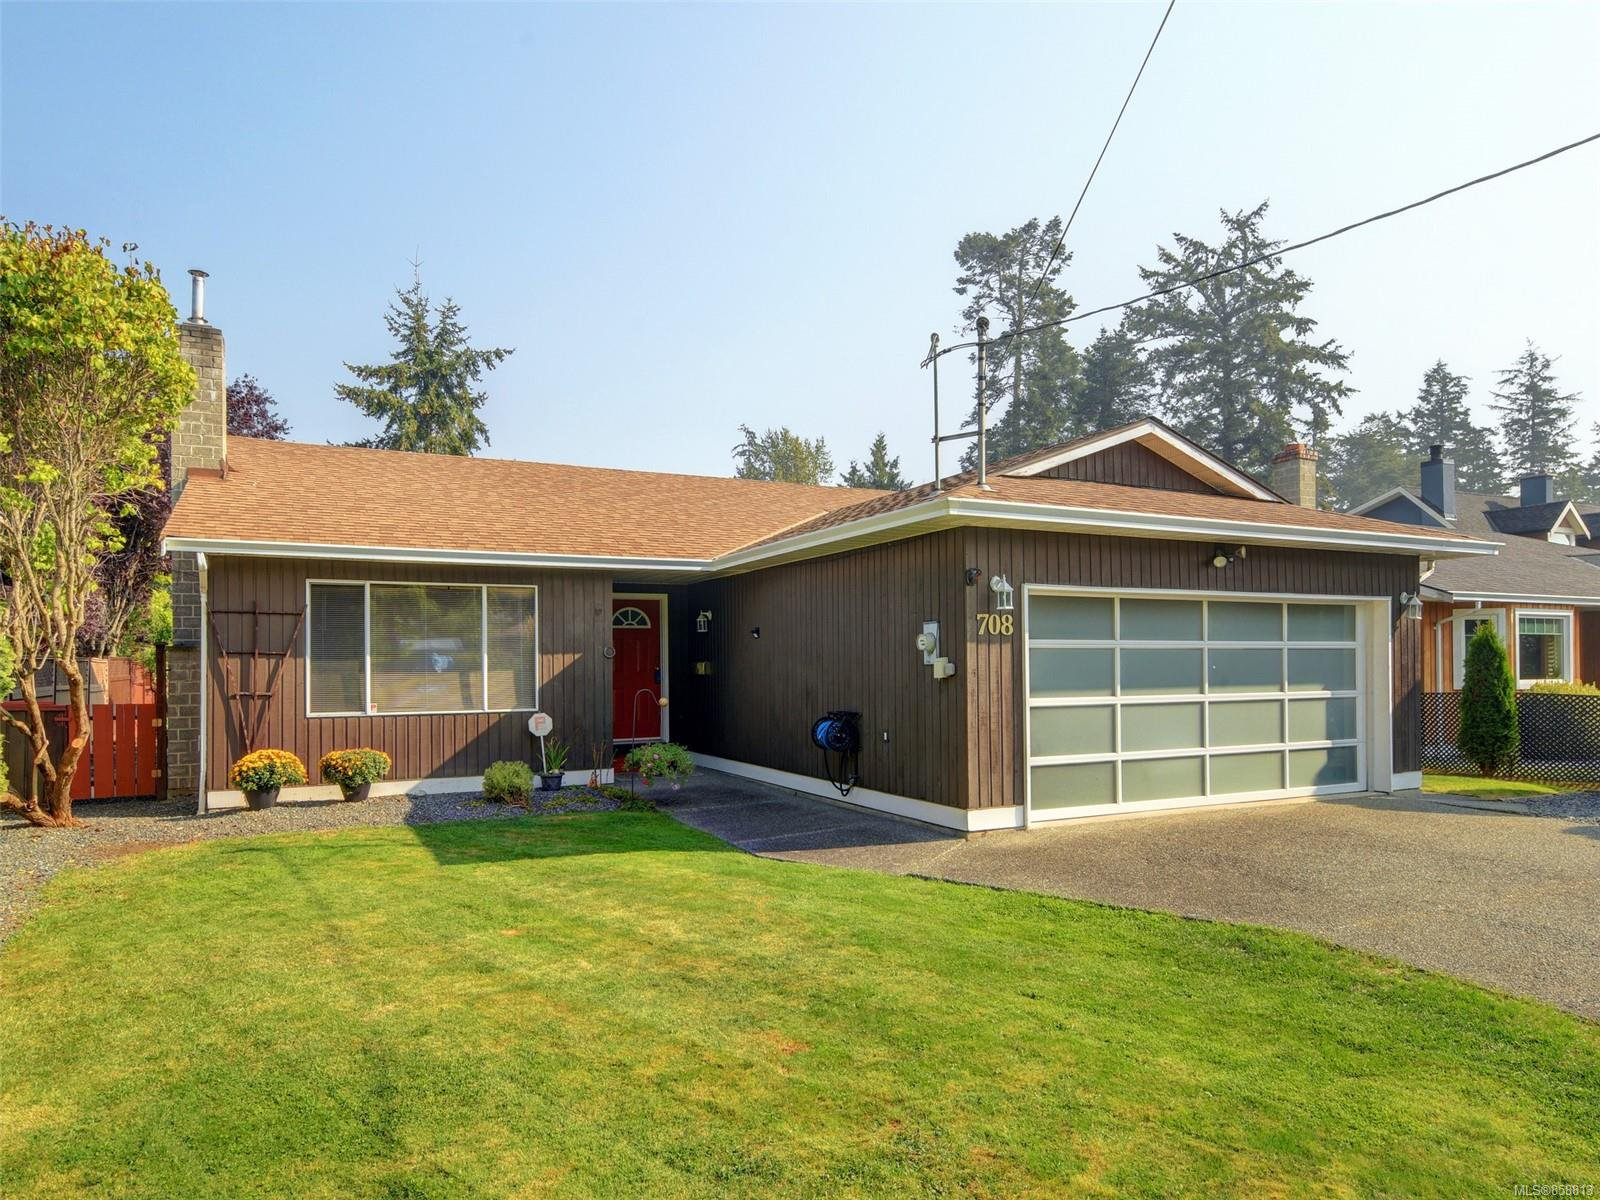 Main Photo: 708 Miller Ave in : SW Royal Oak House for sale (Saanich West)  : MLS®# 858813